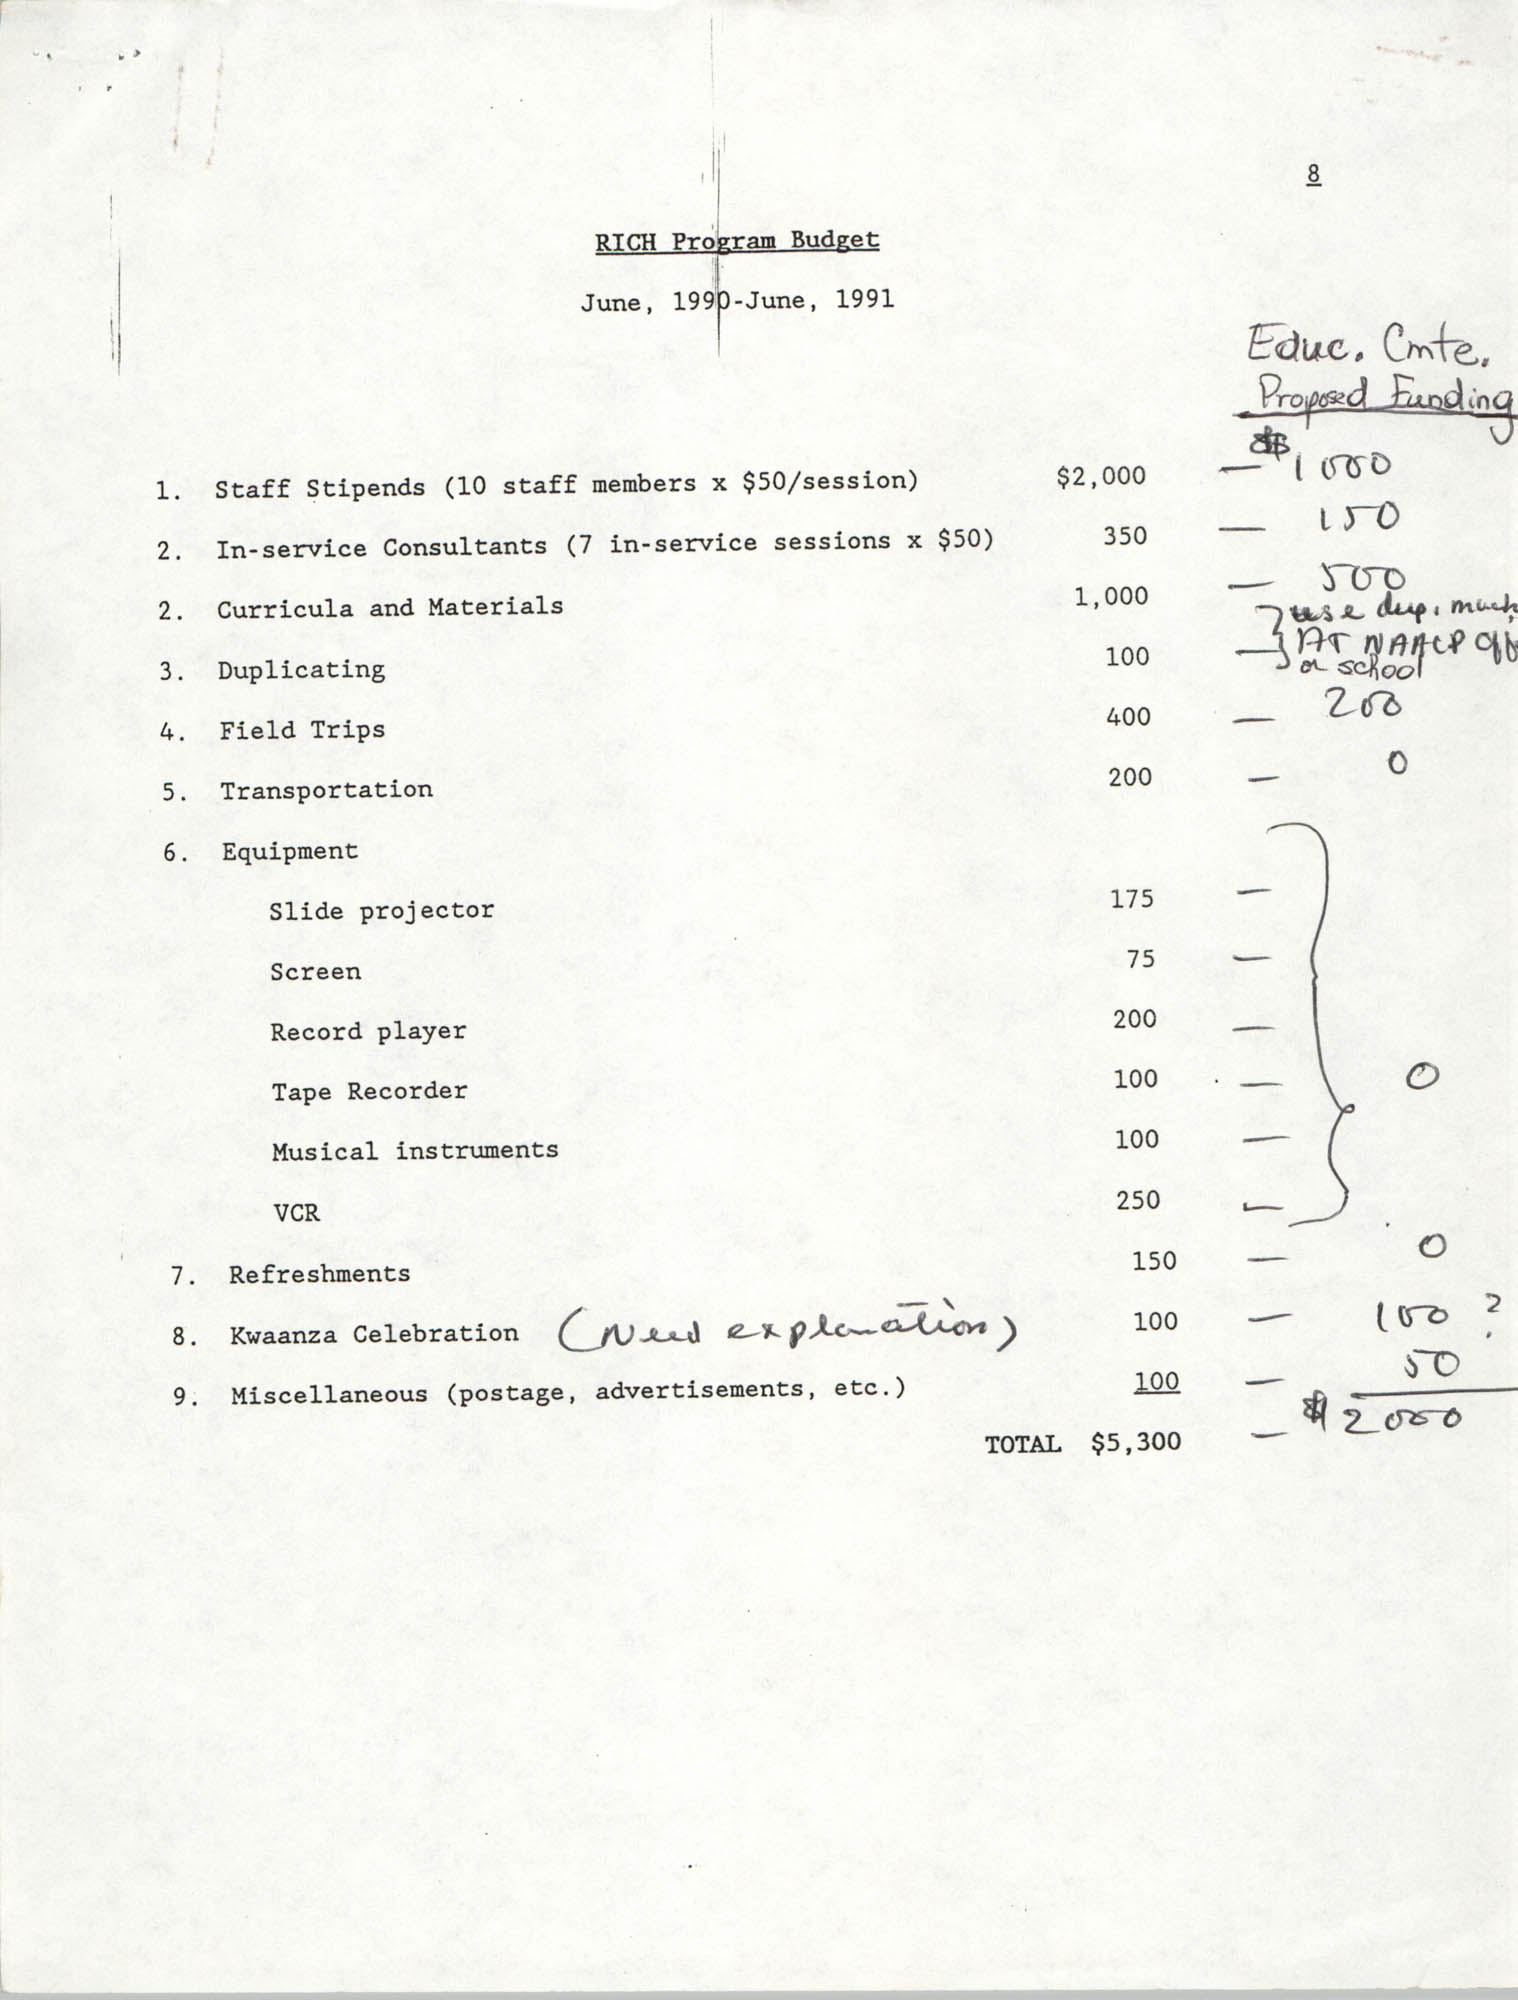 RICH Program Budget, June 1990-June 1991